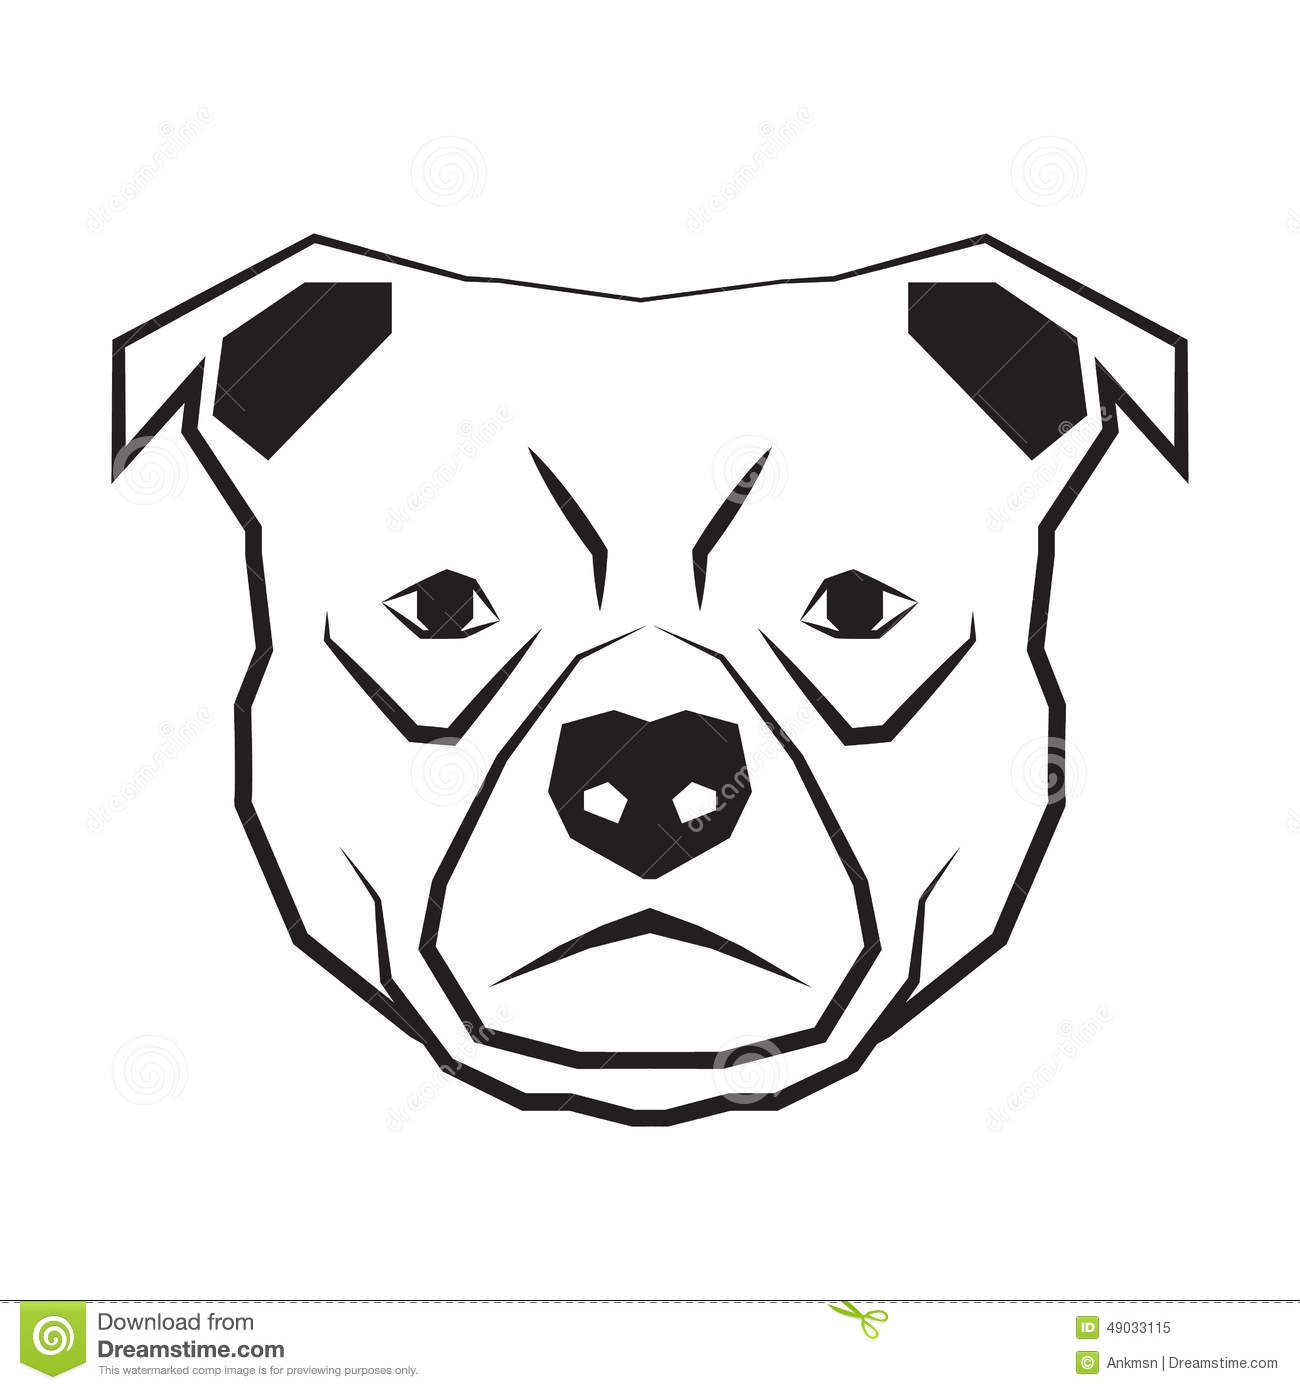 Dog Face Black And White Drawing Contour Stock Vector - Image ... Veterinary Tools Clip Art